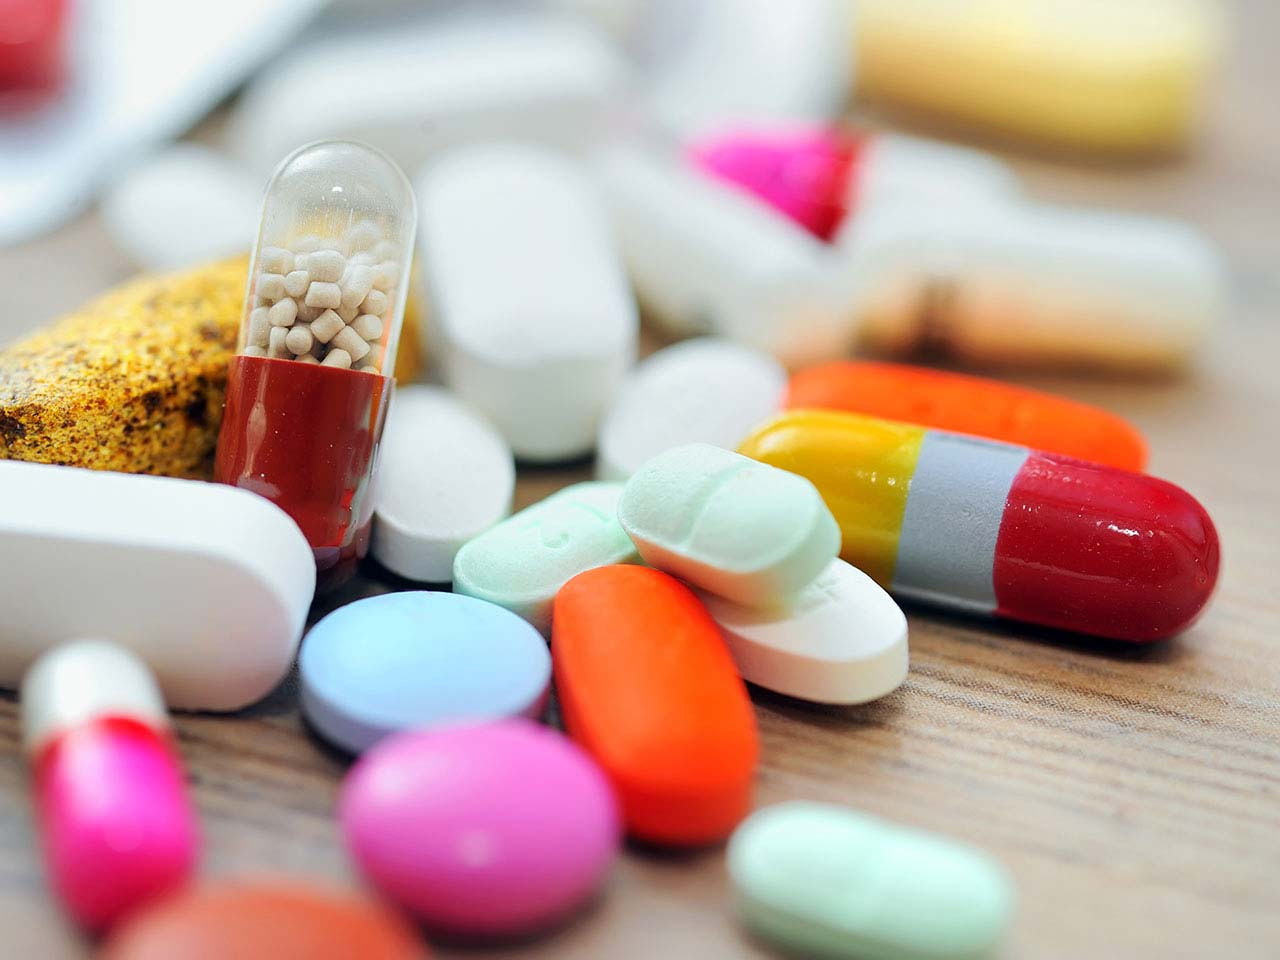 Buy Generic Drugs And Save Money For Future